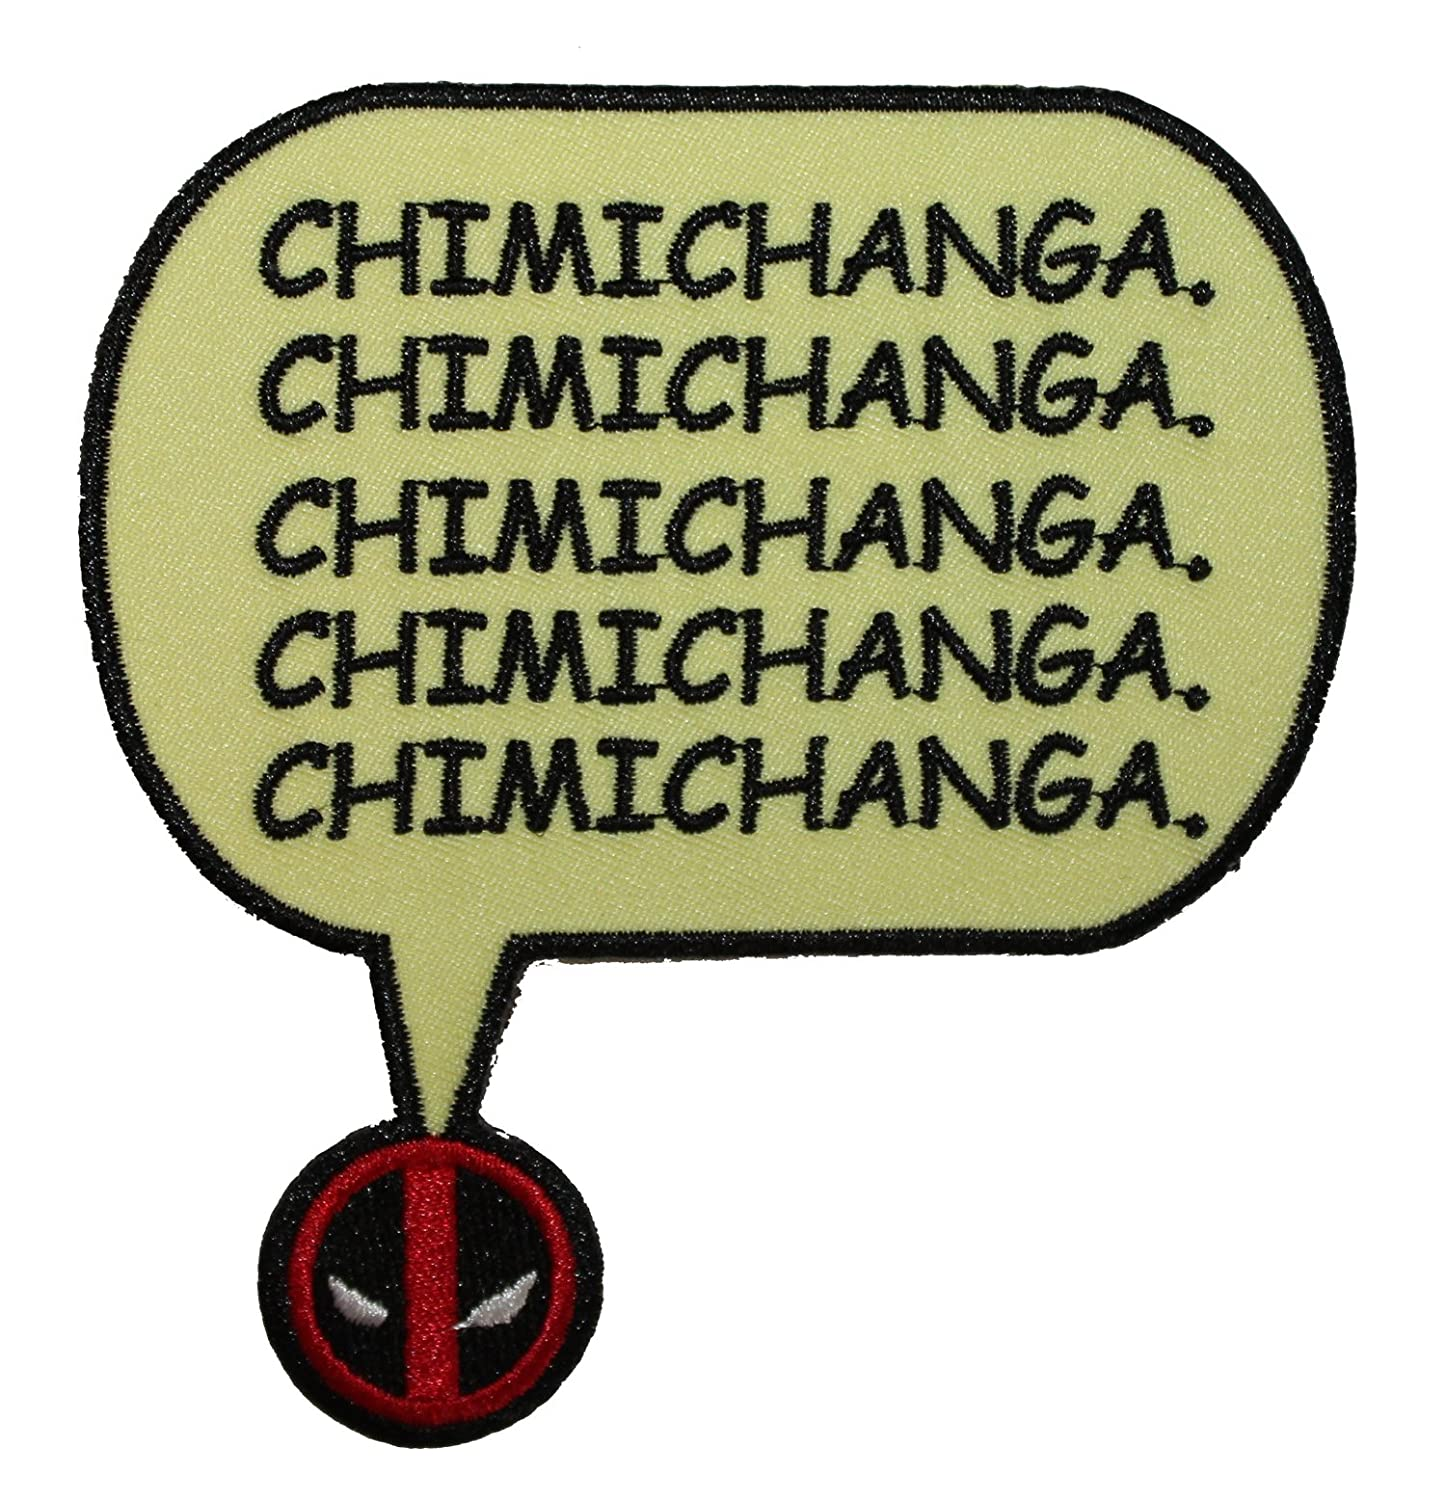 Marvel Extreme Deadpool Chimichanga PATCH toppa - Officially Licensed Original Artwork, 3.5 x 3.8, Iron-On / Sew-On Embroidered Patch 3.5 x 3.8 P-MVL-0029